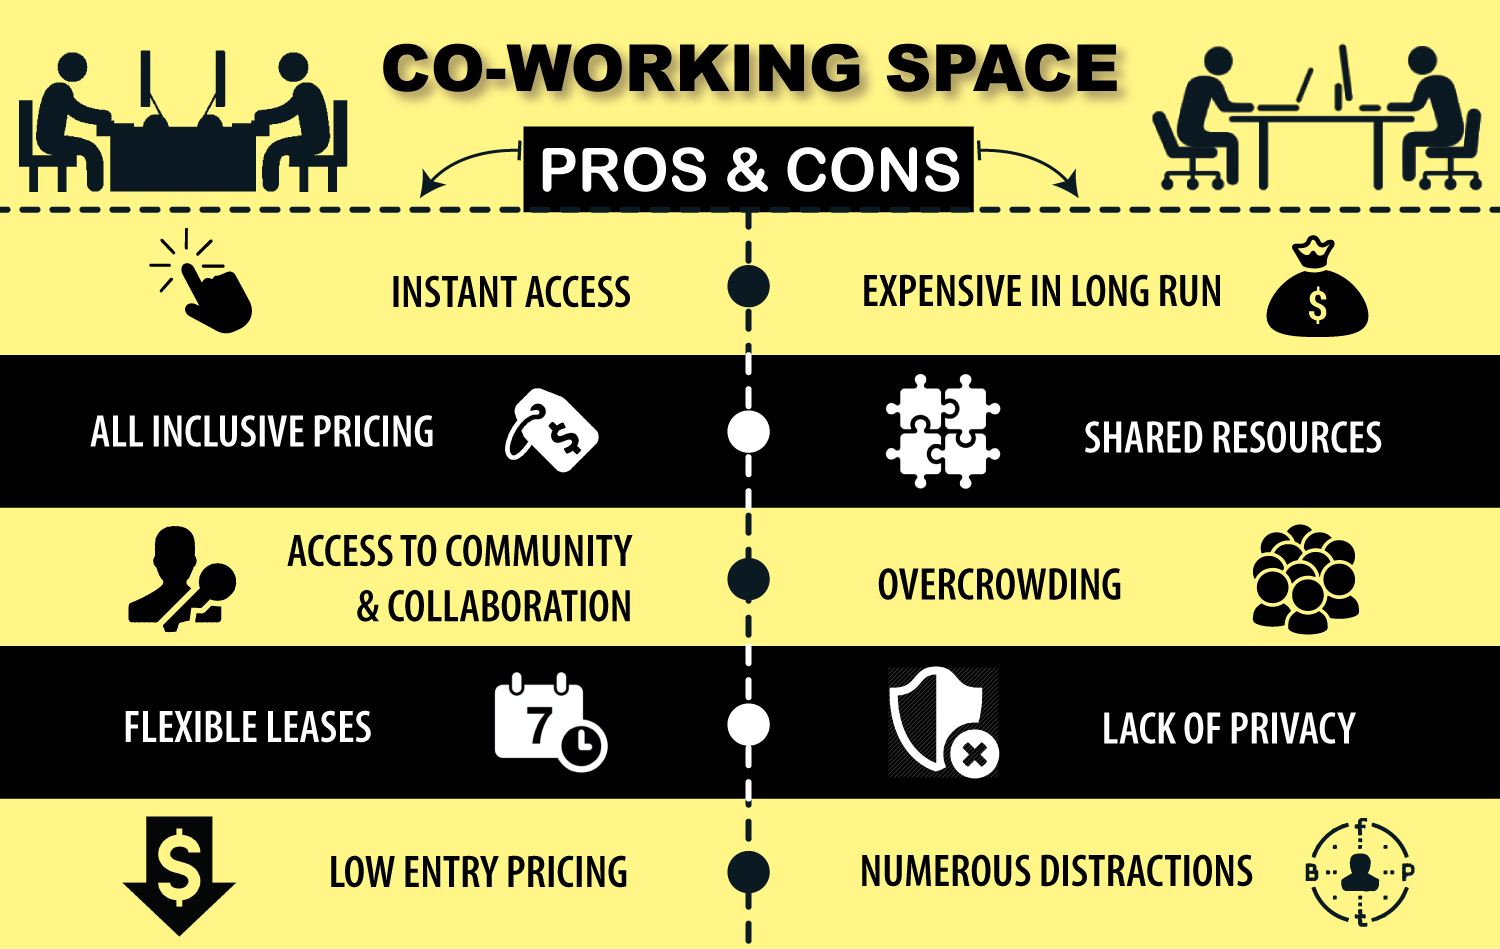 Pros and Cons of Co-Working Spaces